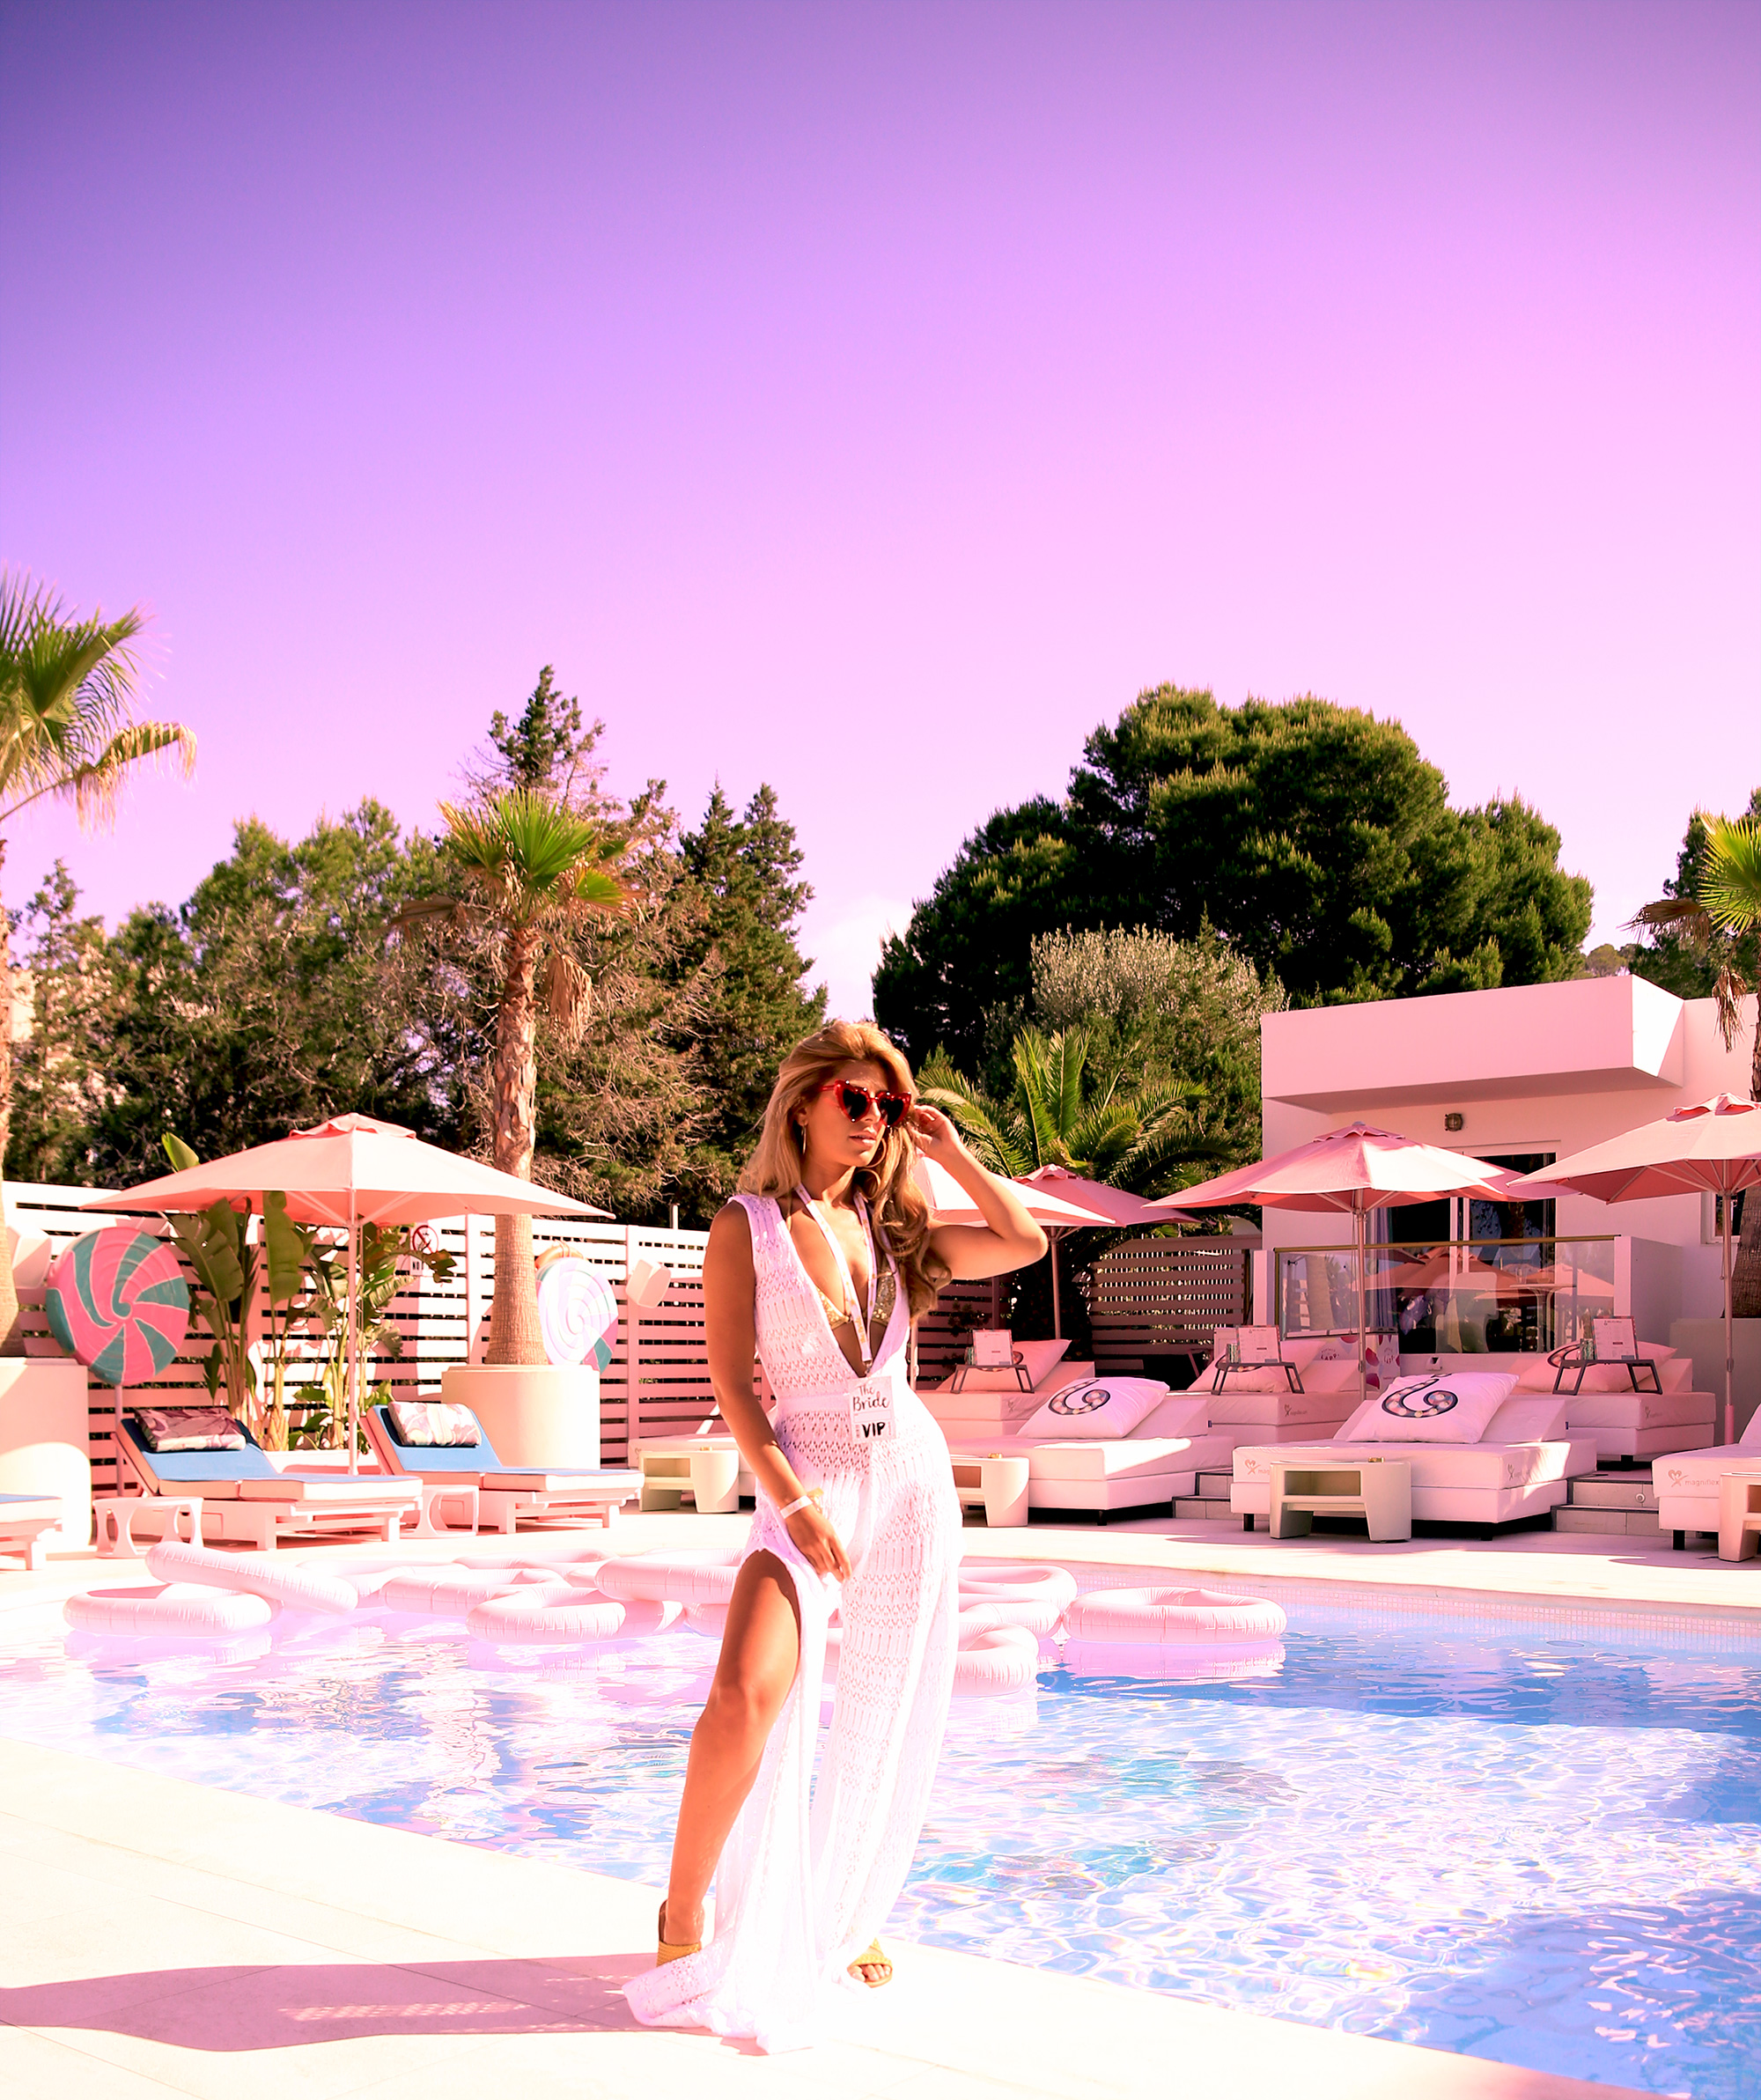 ibiza hens party wiki woo hotel bride to be ideas